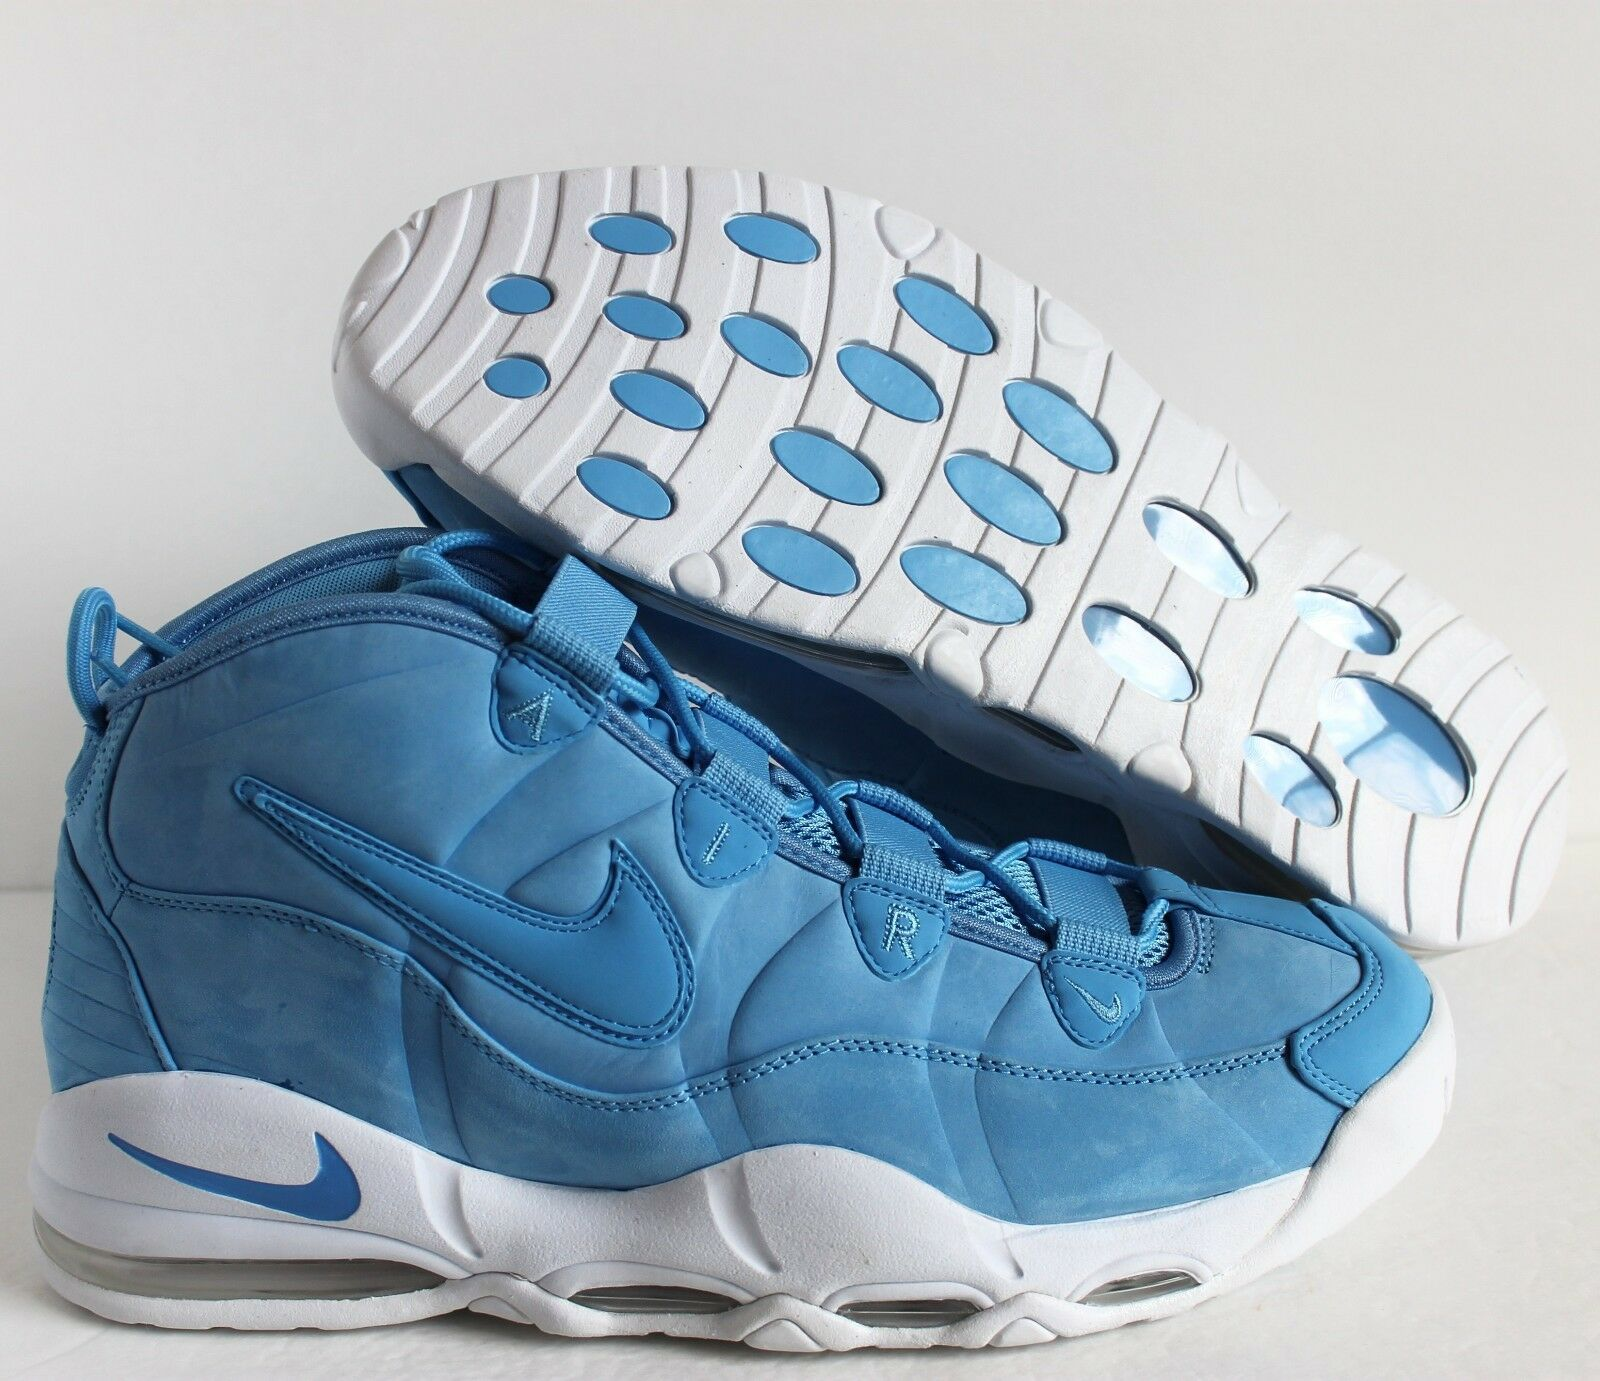 NIKE AIR MAX UPTEMPO 95 AS QS ''ALL STAR'' UNIVERSITY BLUE Price reduction Seasonal price cuts, discount benefits